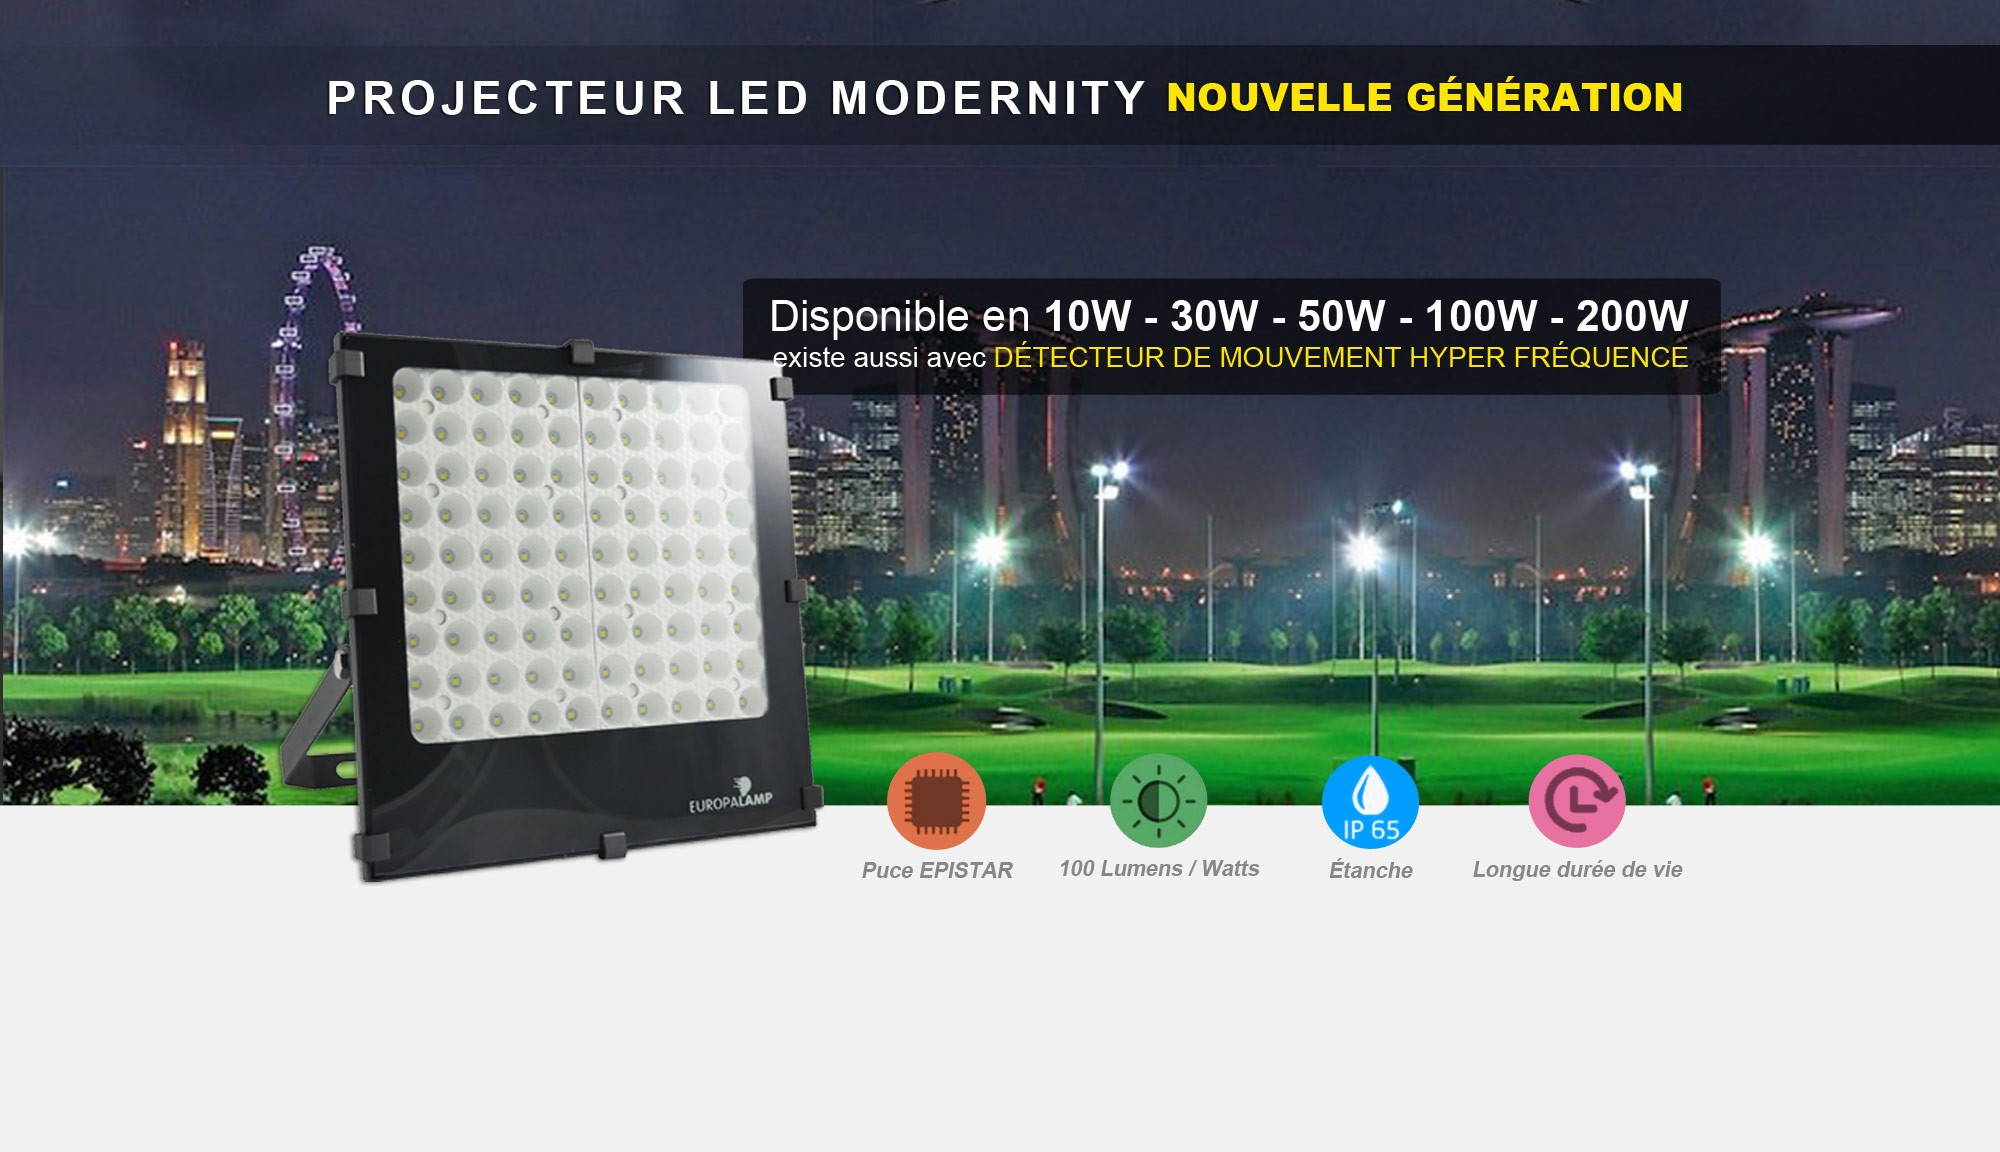 Projecteur LED Modernity